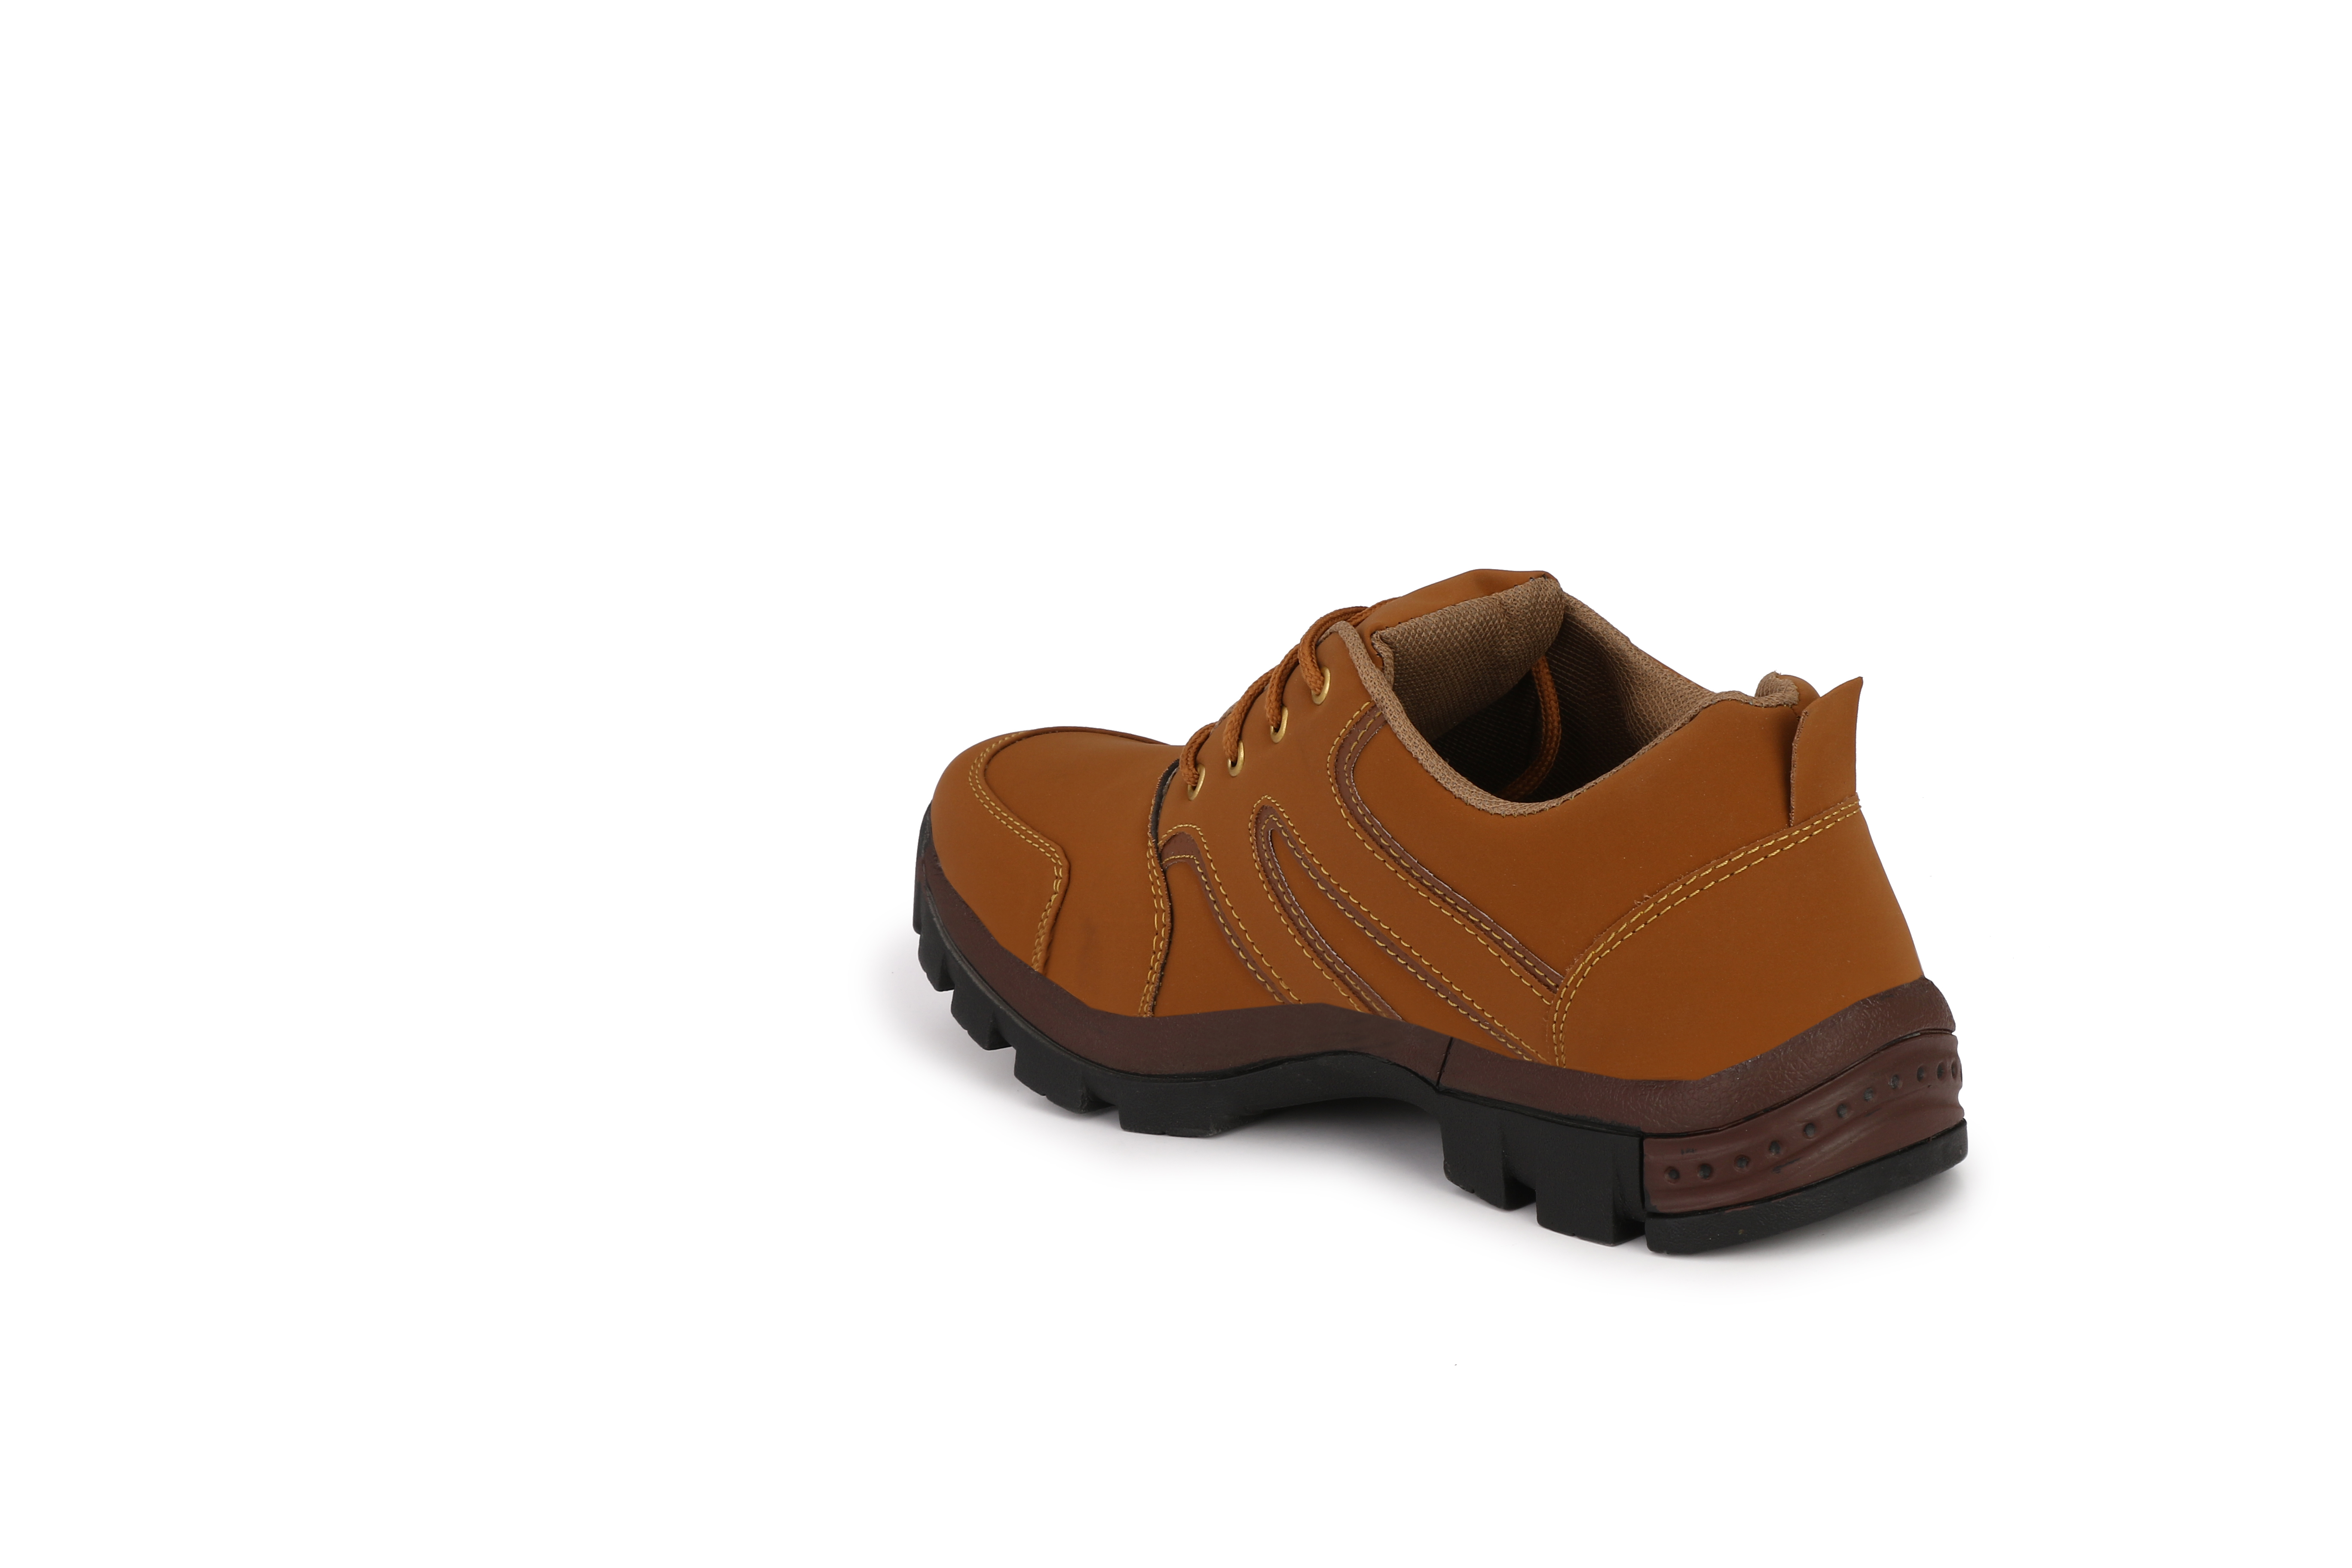 BUCIK Men's Brown Synthetic Leather Smart Casual Shoes BCK082-BROWN (Brown,6-10,8 PAIR)